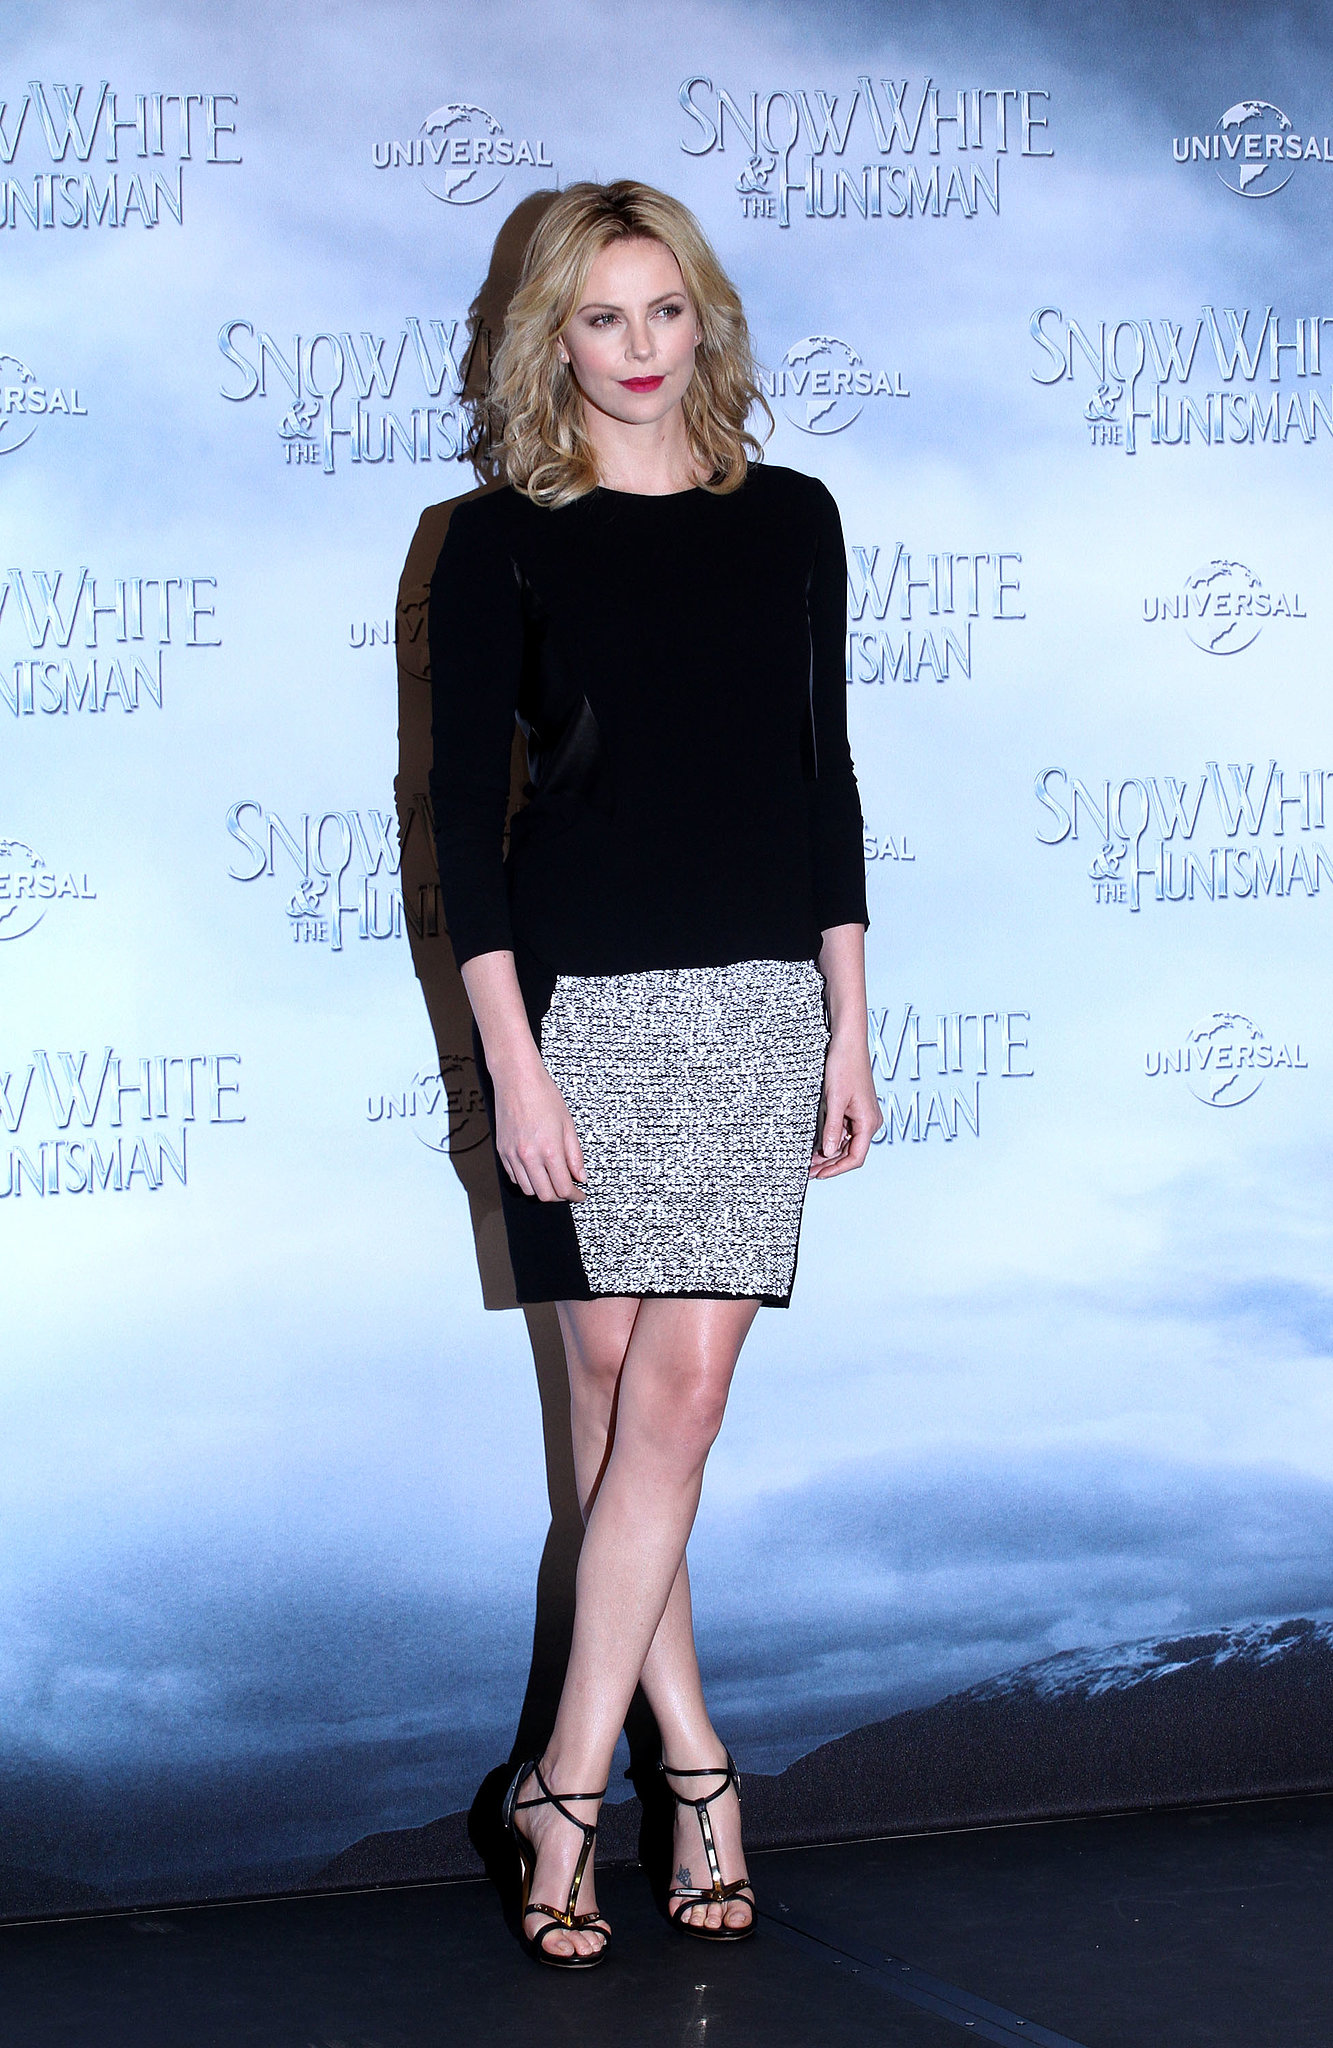 Charlize styled a Rag & Bone knit top with an Alexander